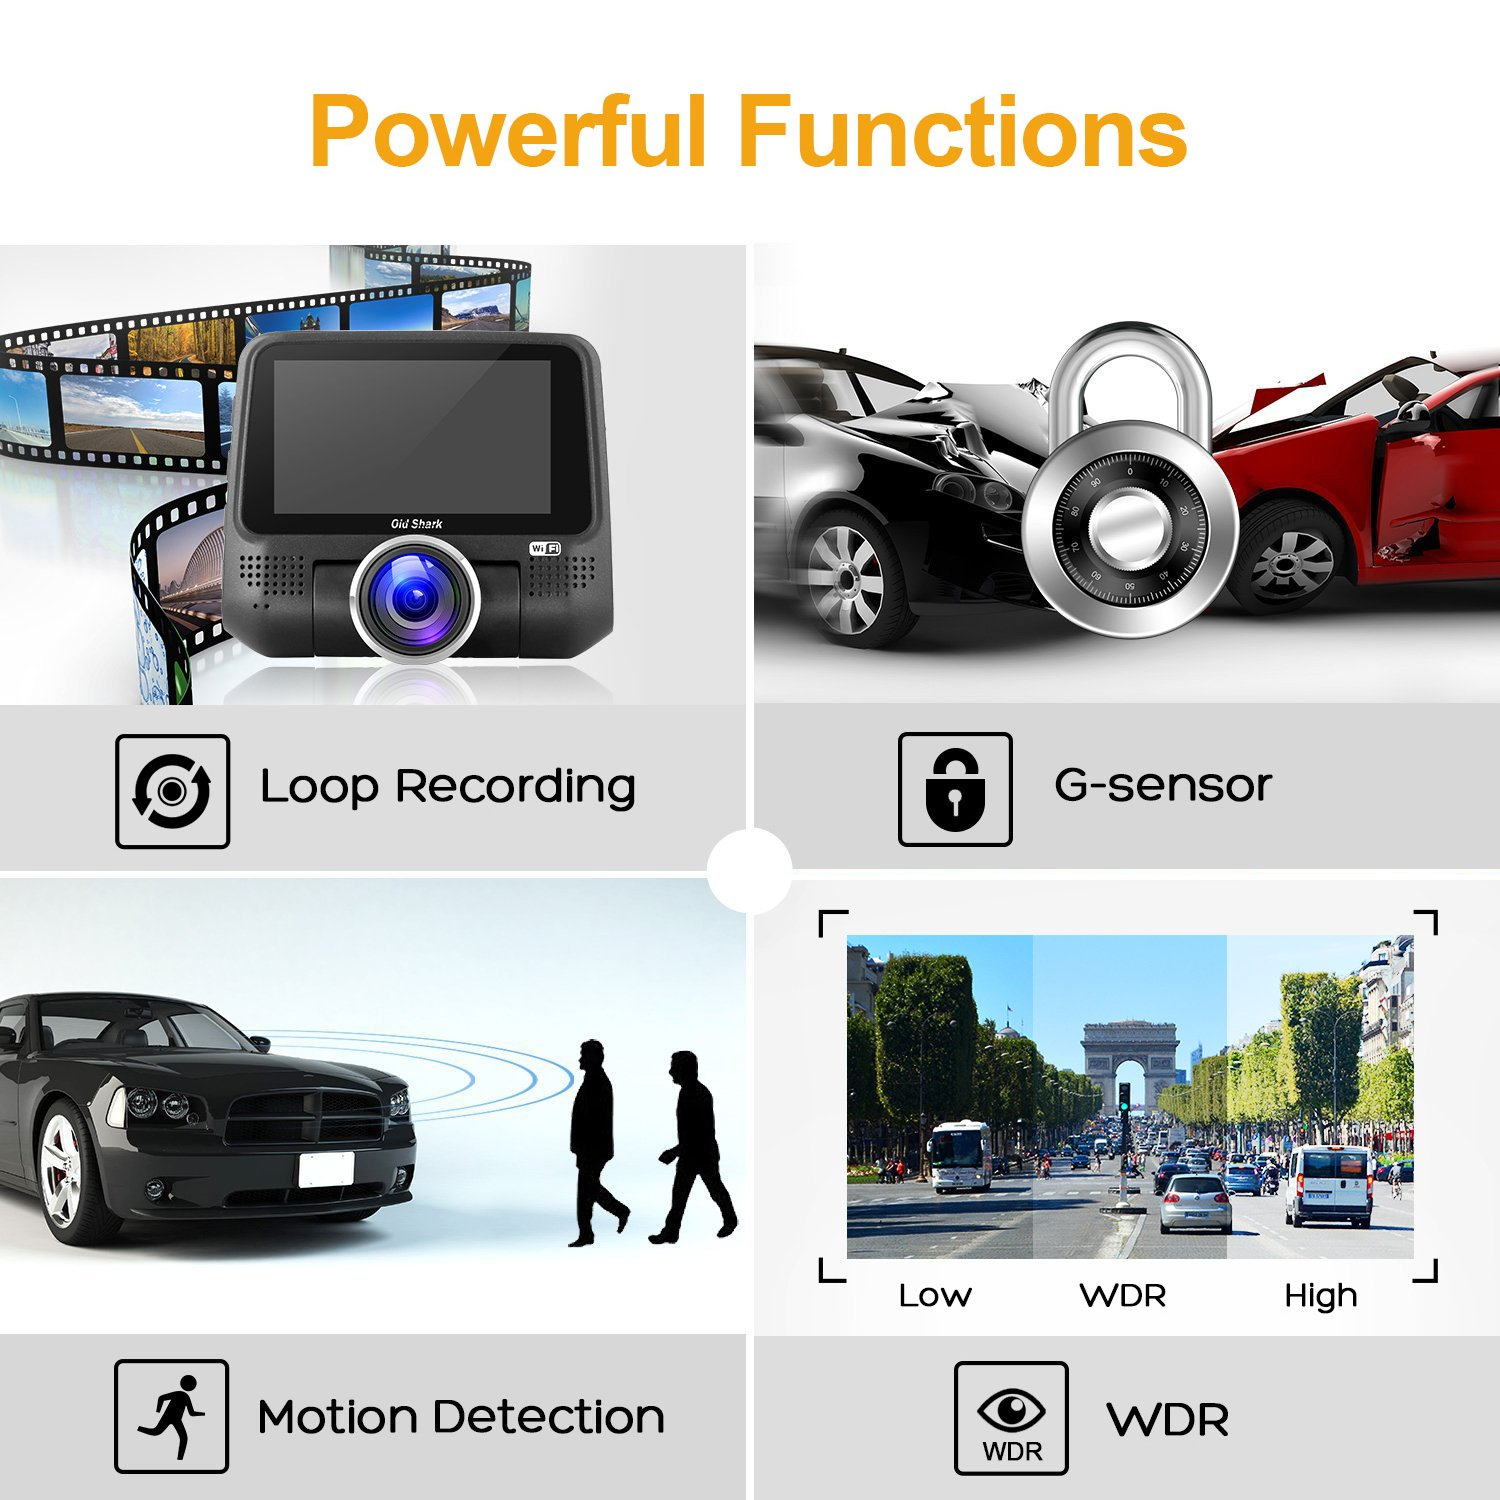 """Free 16GB SD Card ,1080P Full HD in Car DVR 220 Degree Wide Angle 3/"""" LCD Dashboard Camera,Sony Sensor Car Driving Video Recorder with G-Sensor Night Vision,WDR Old Shark XURPS-854XUJ-513S OldShark G15 Dash Cam with WiFi"""